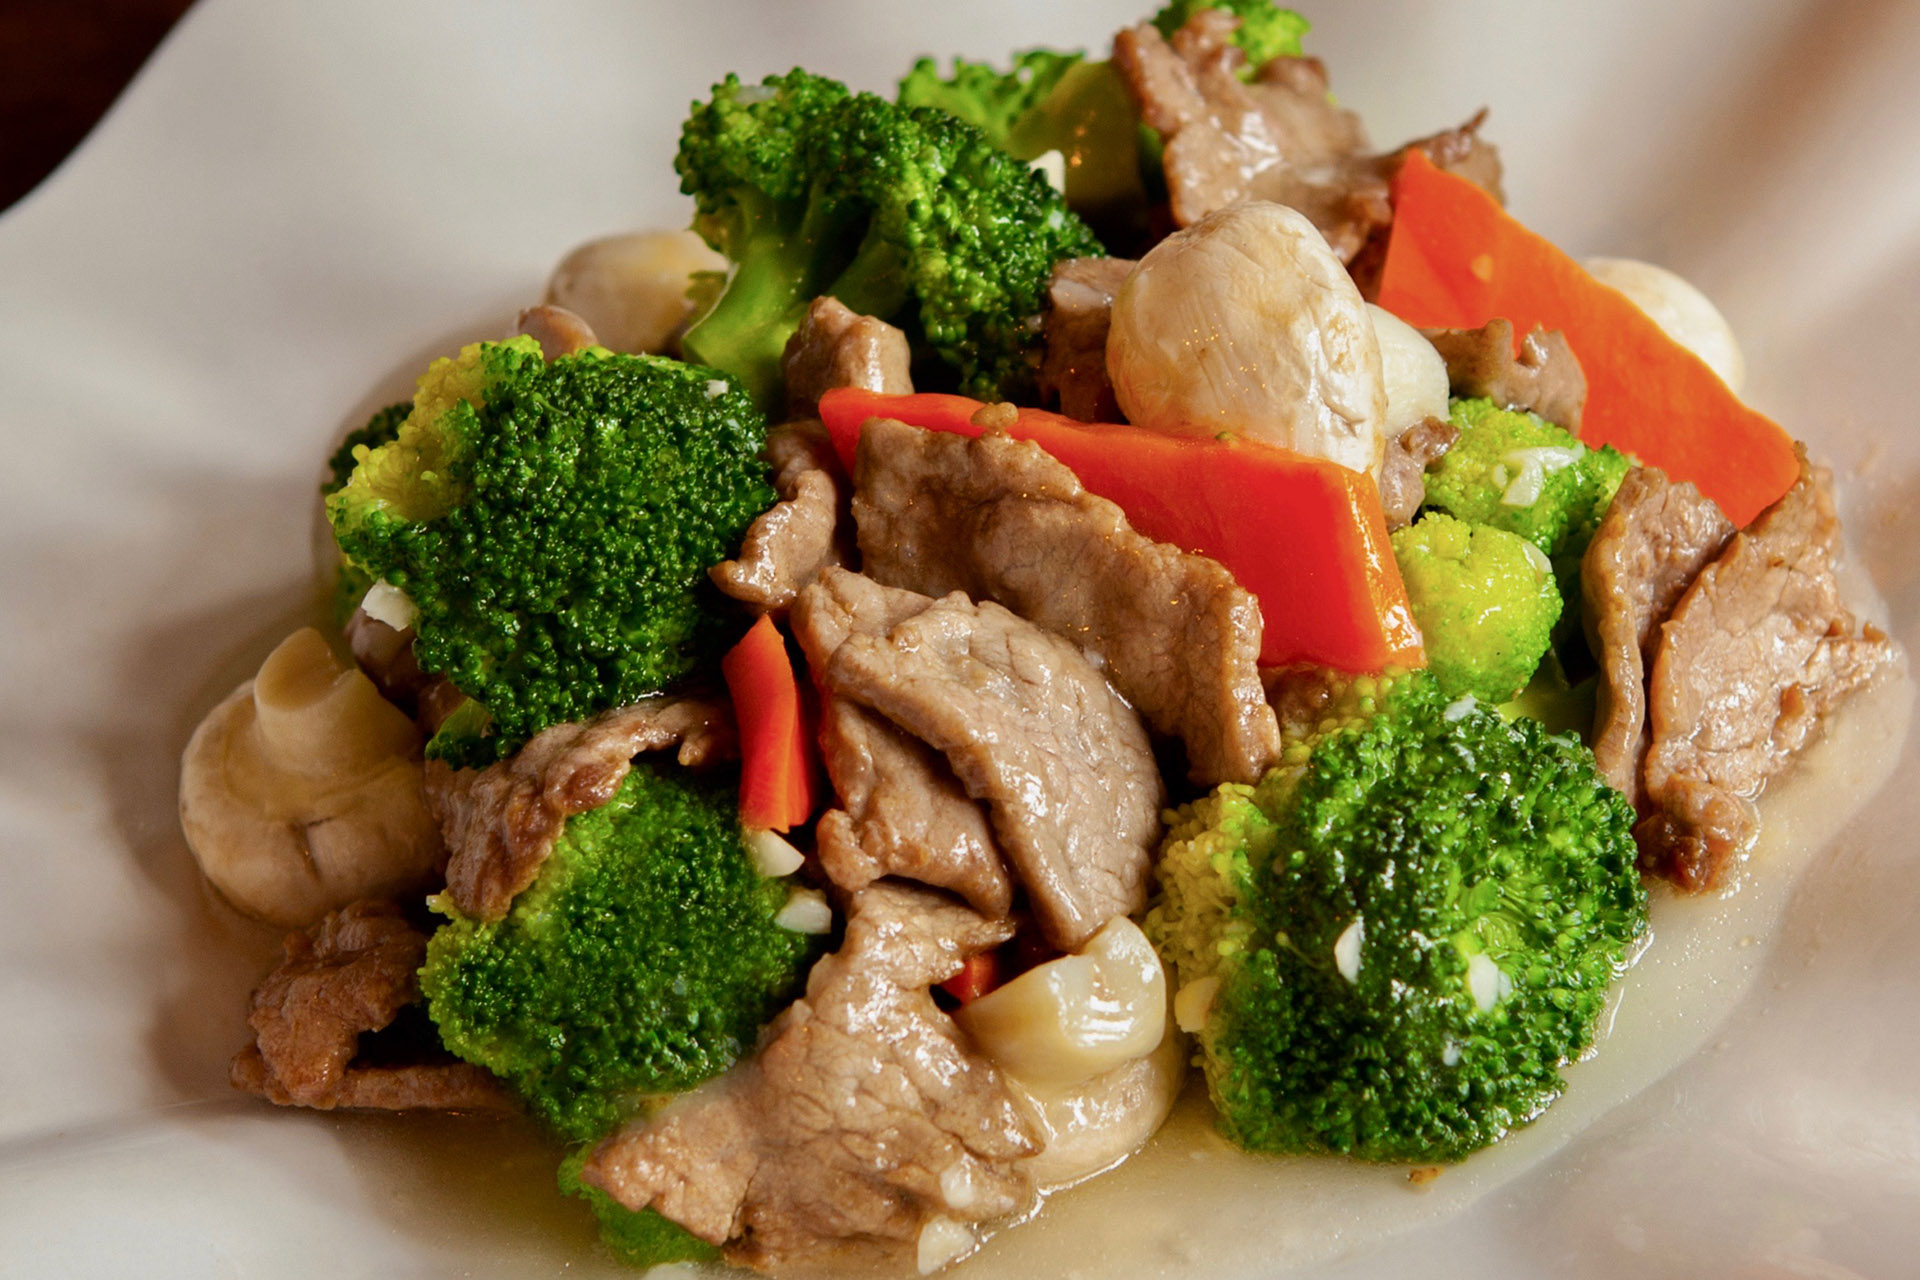 Beef & Broccoli at Lee Chen Asian Bistro